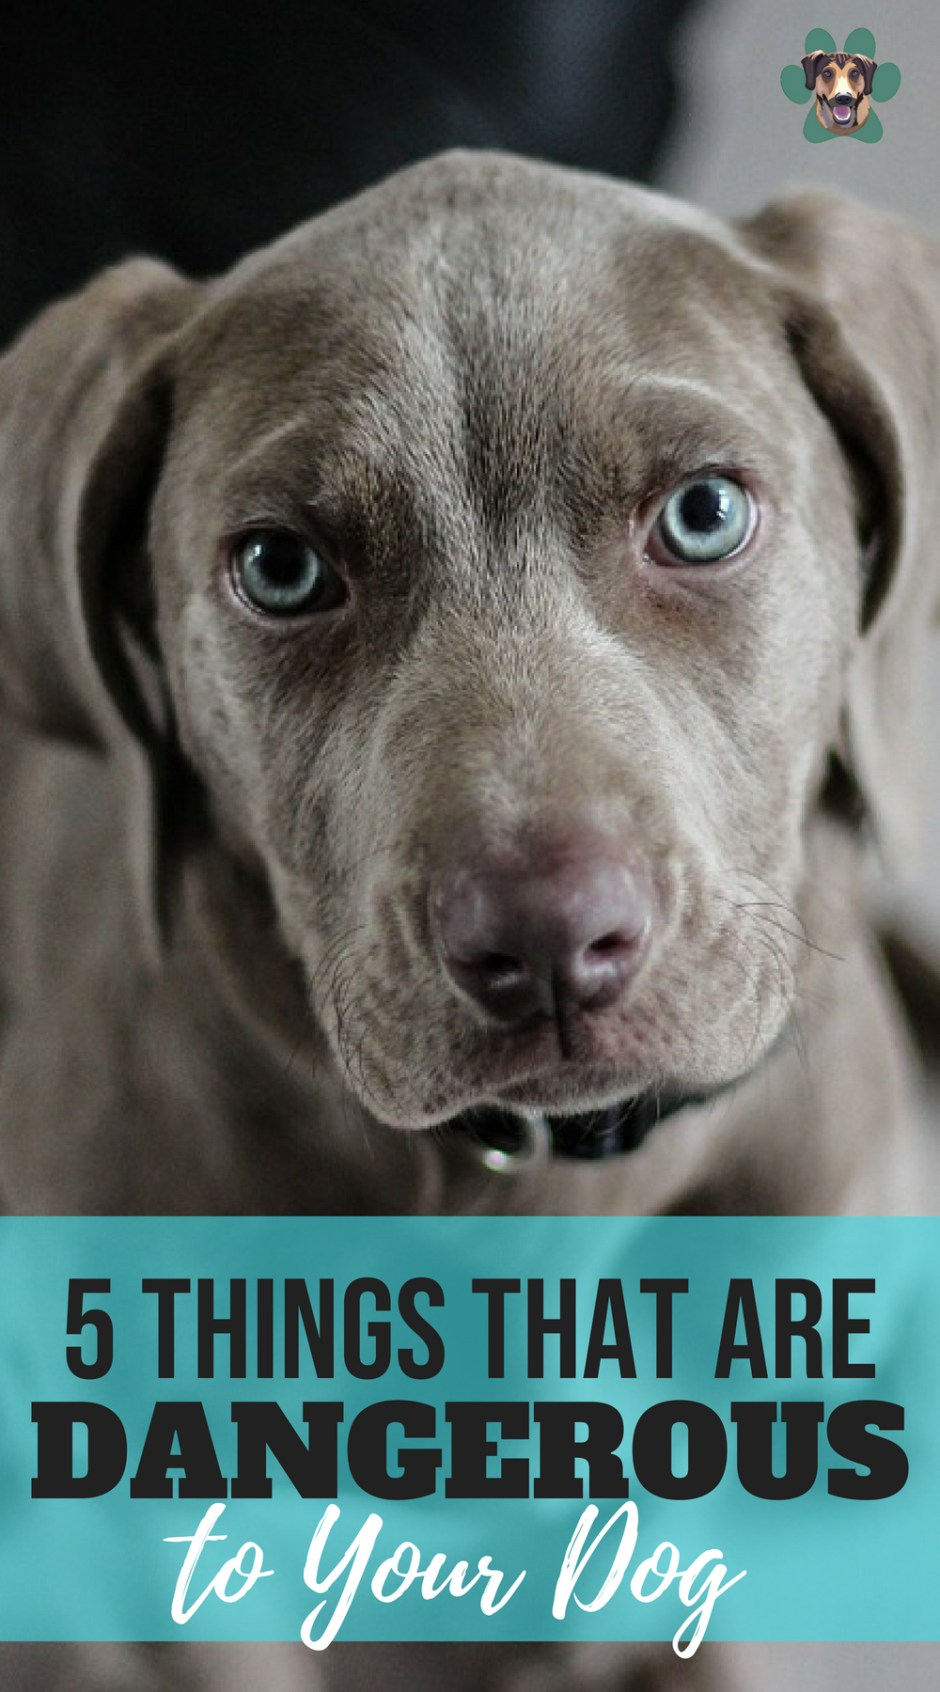 5 Things That Are Dangerous to Your Dog